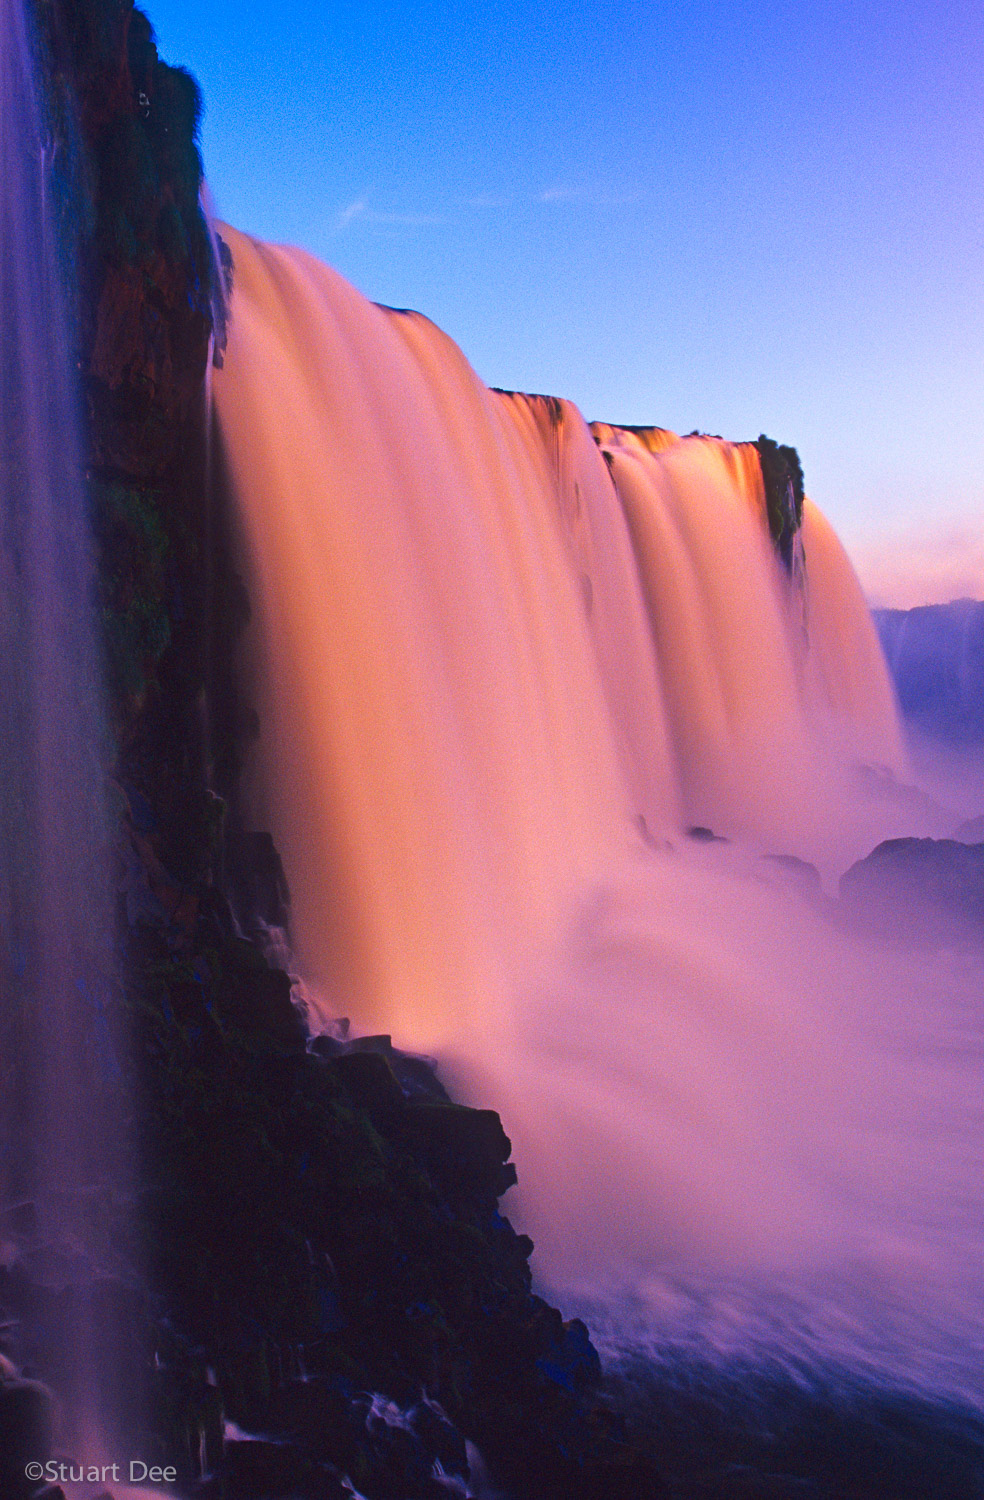 Iguazu Falls at sunset, Brazil